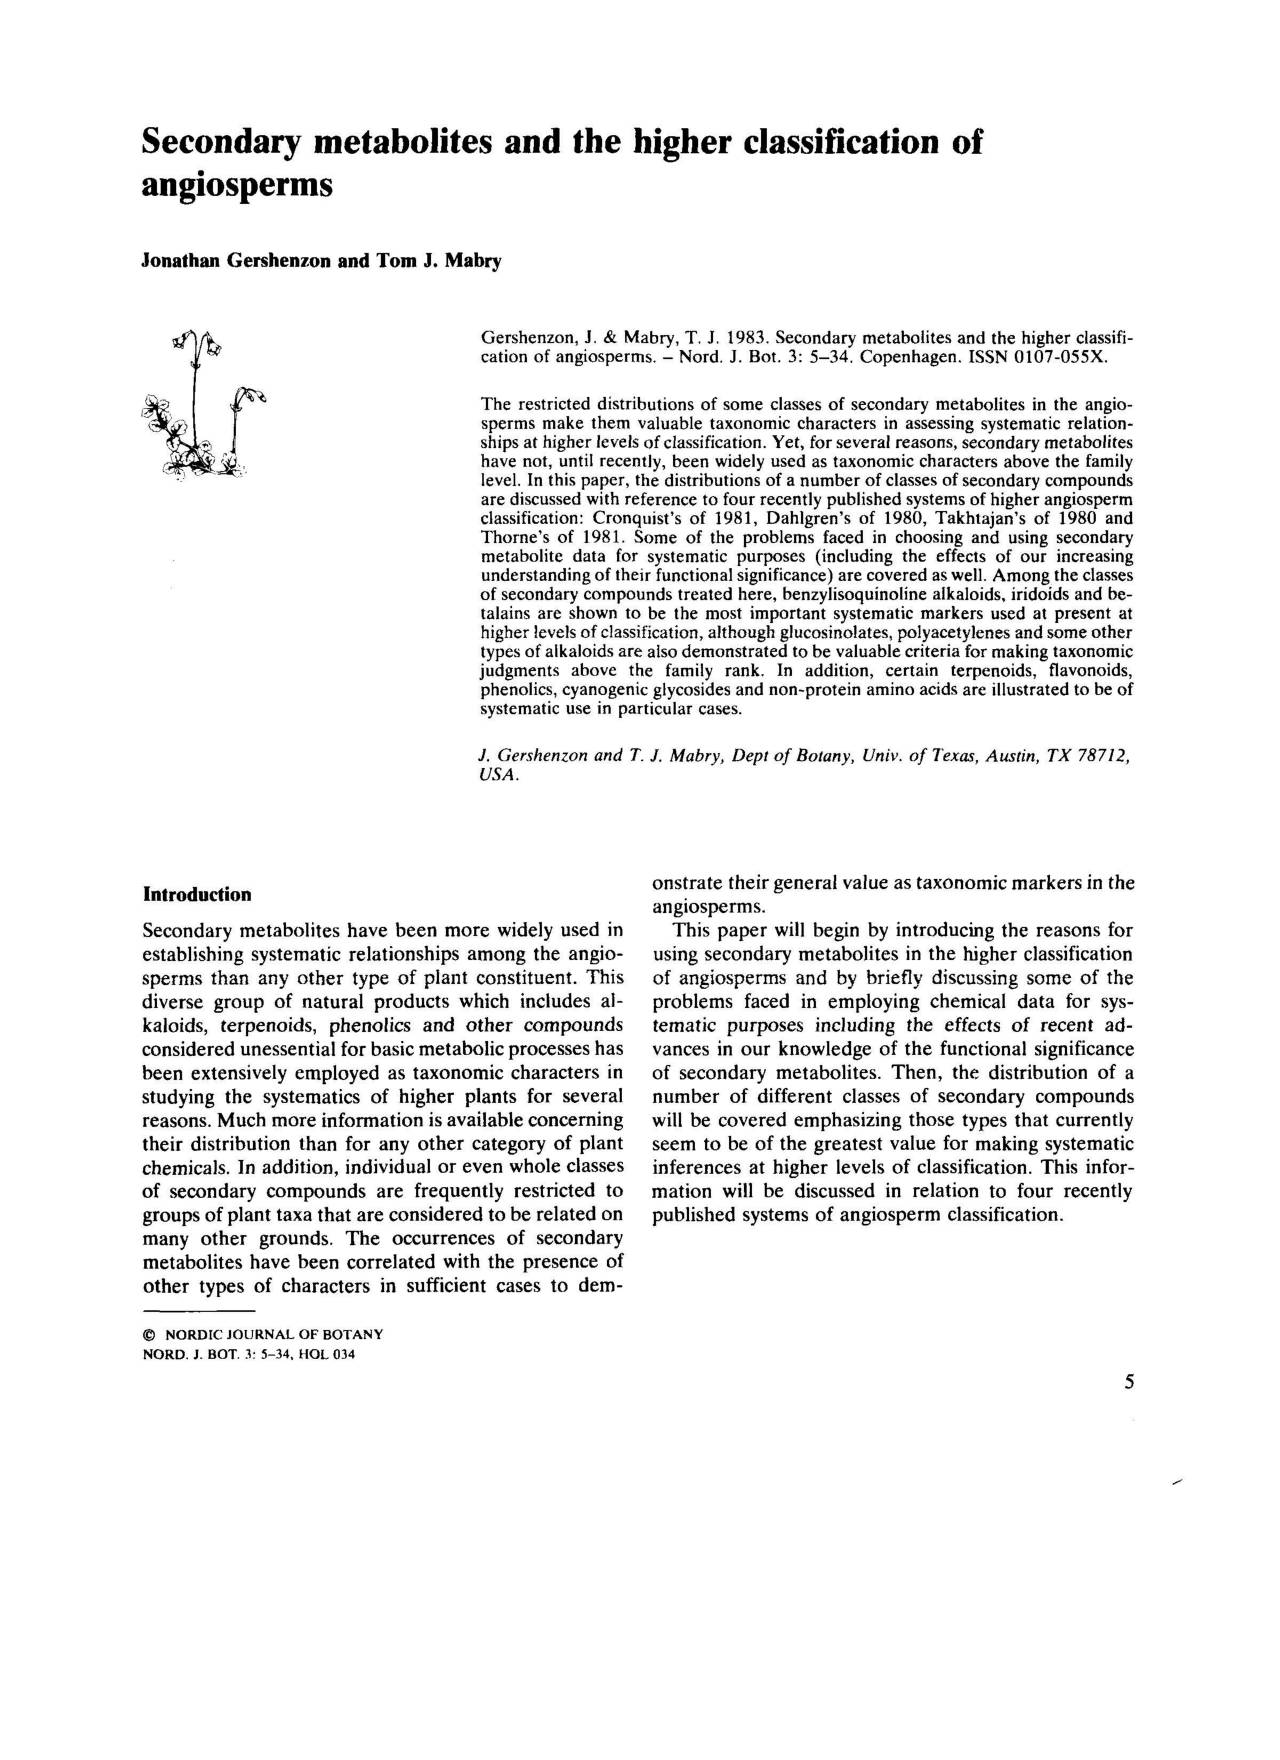 Secondary metabolites and the higher classification of angiosperms